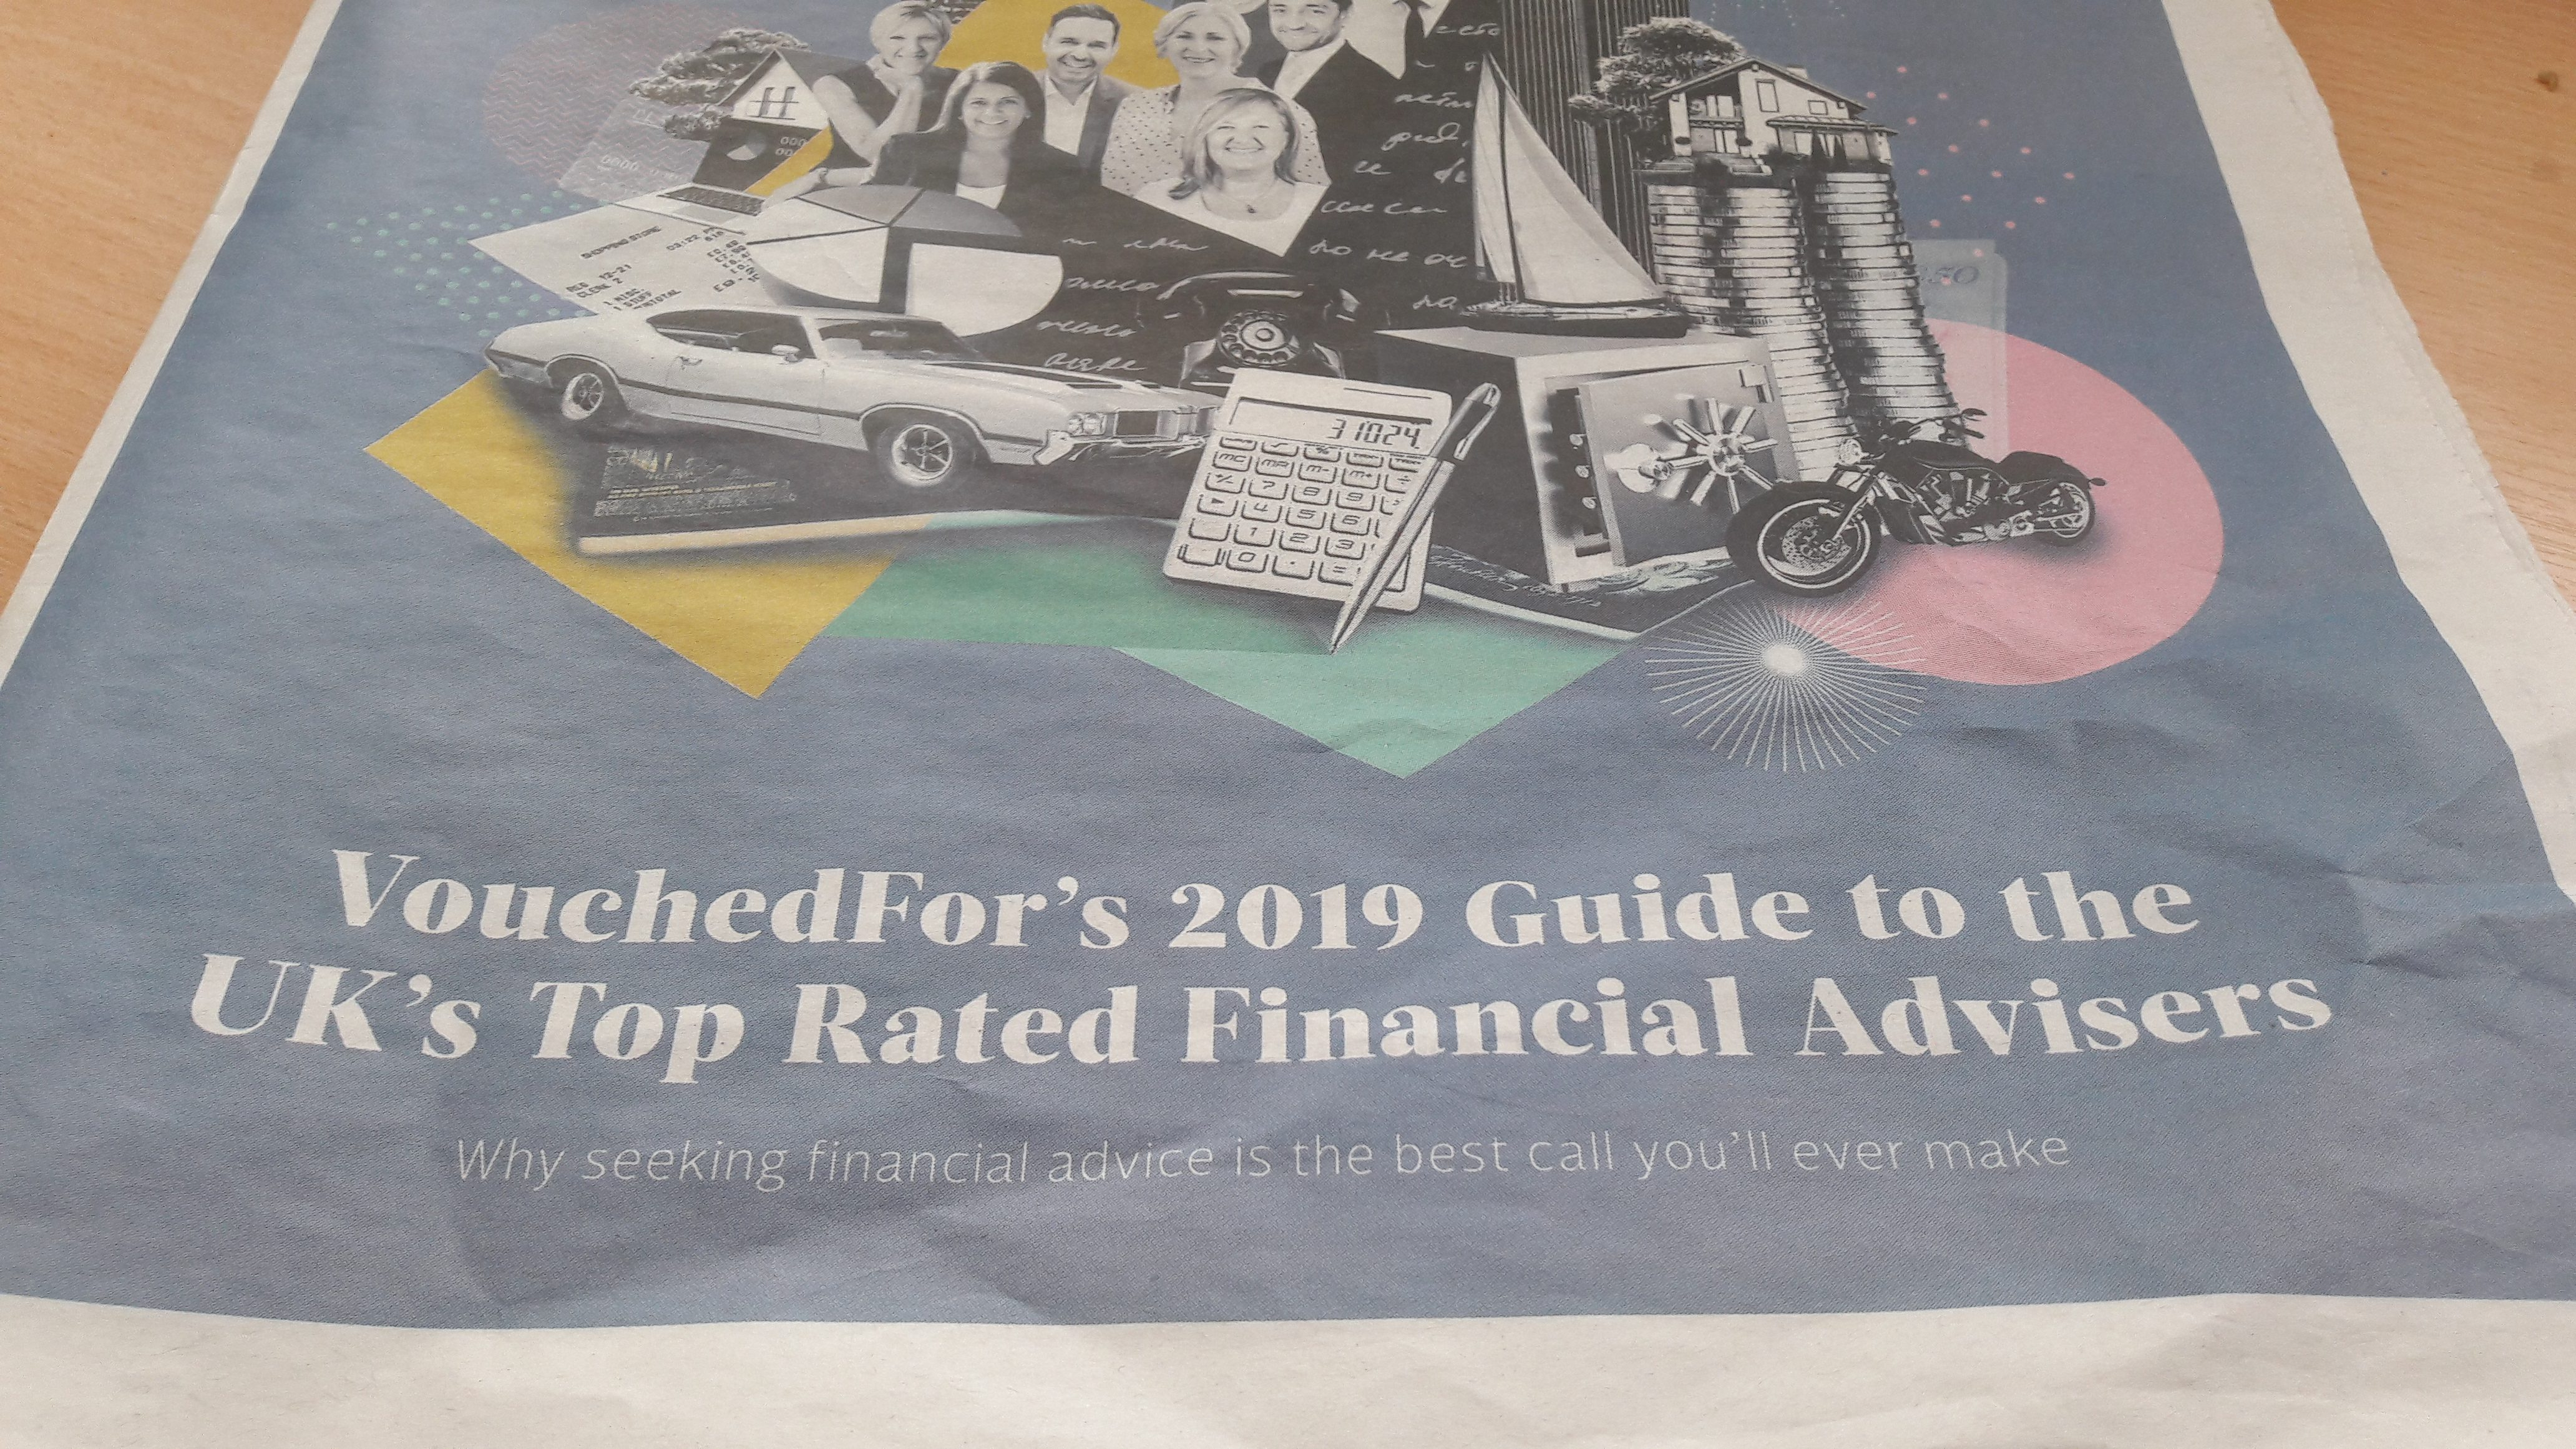 2019 VouchedFor Guide to the UK's Top Rated Financial Advisers